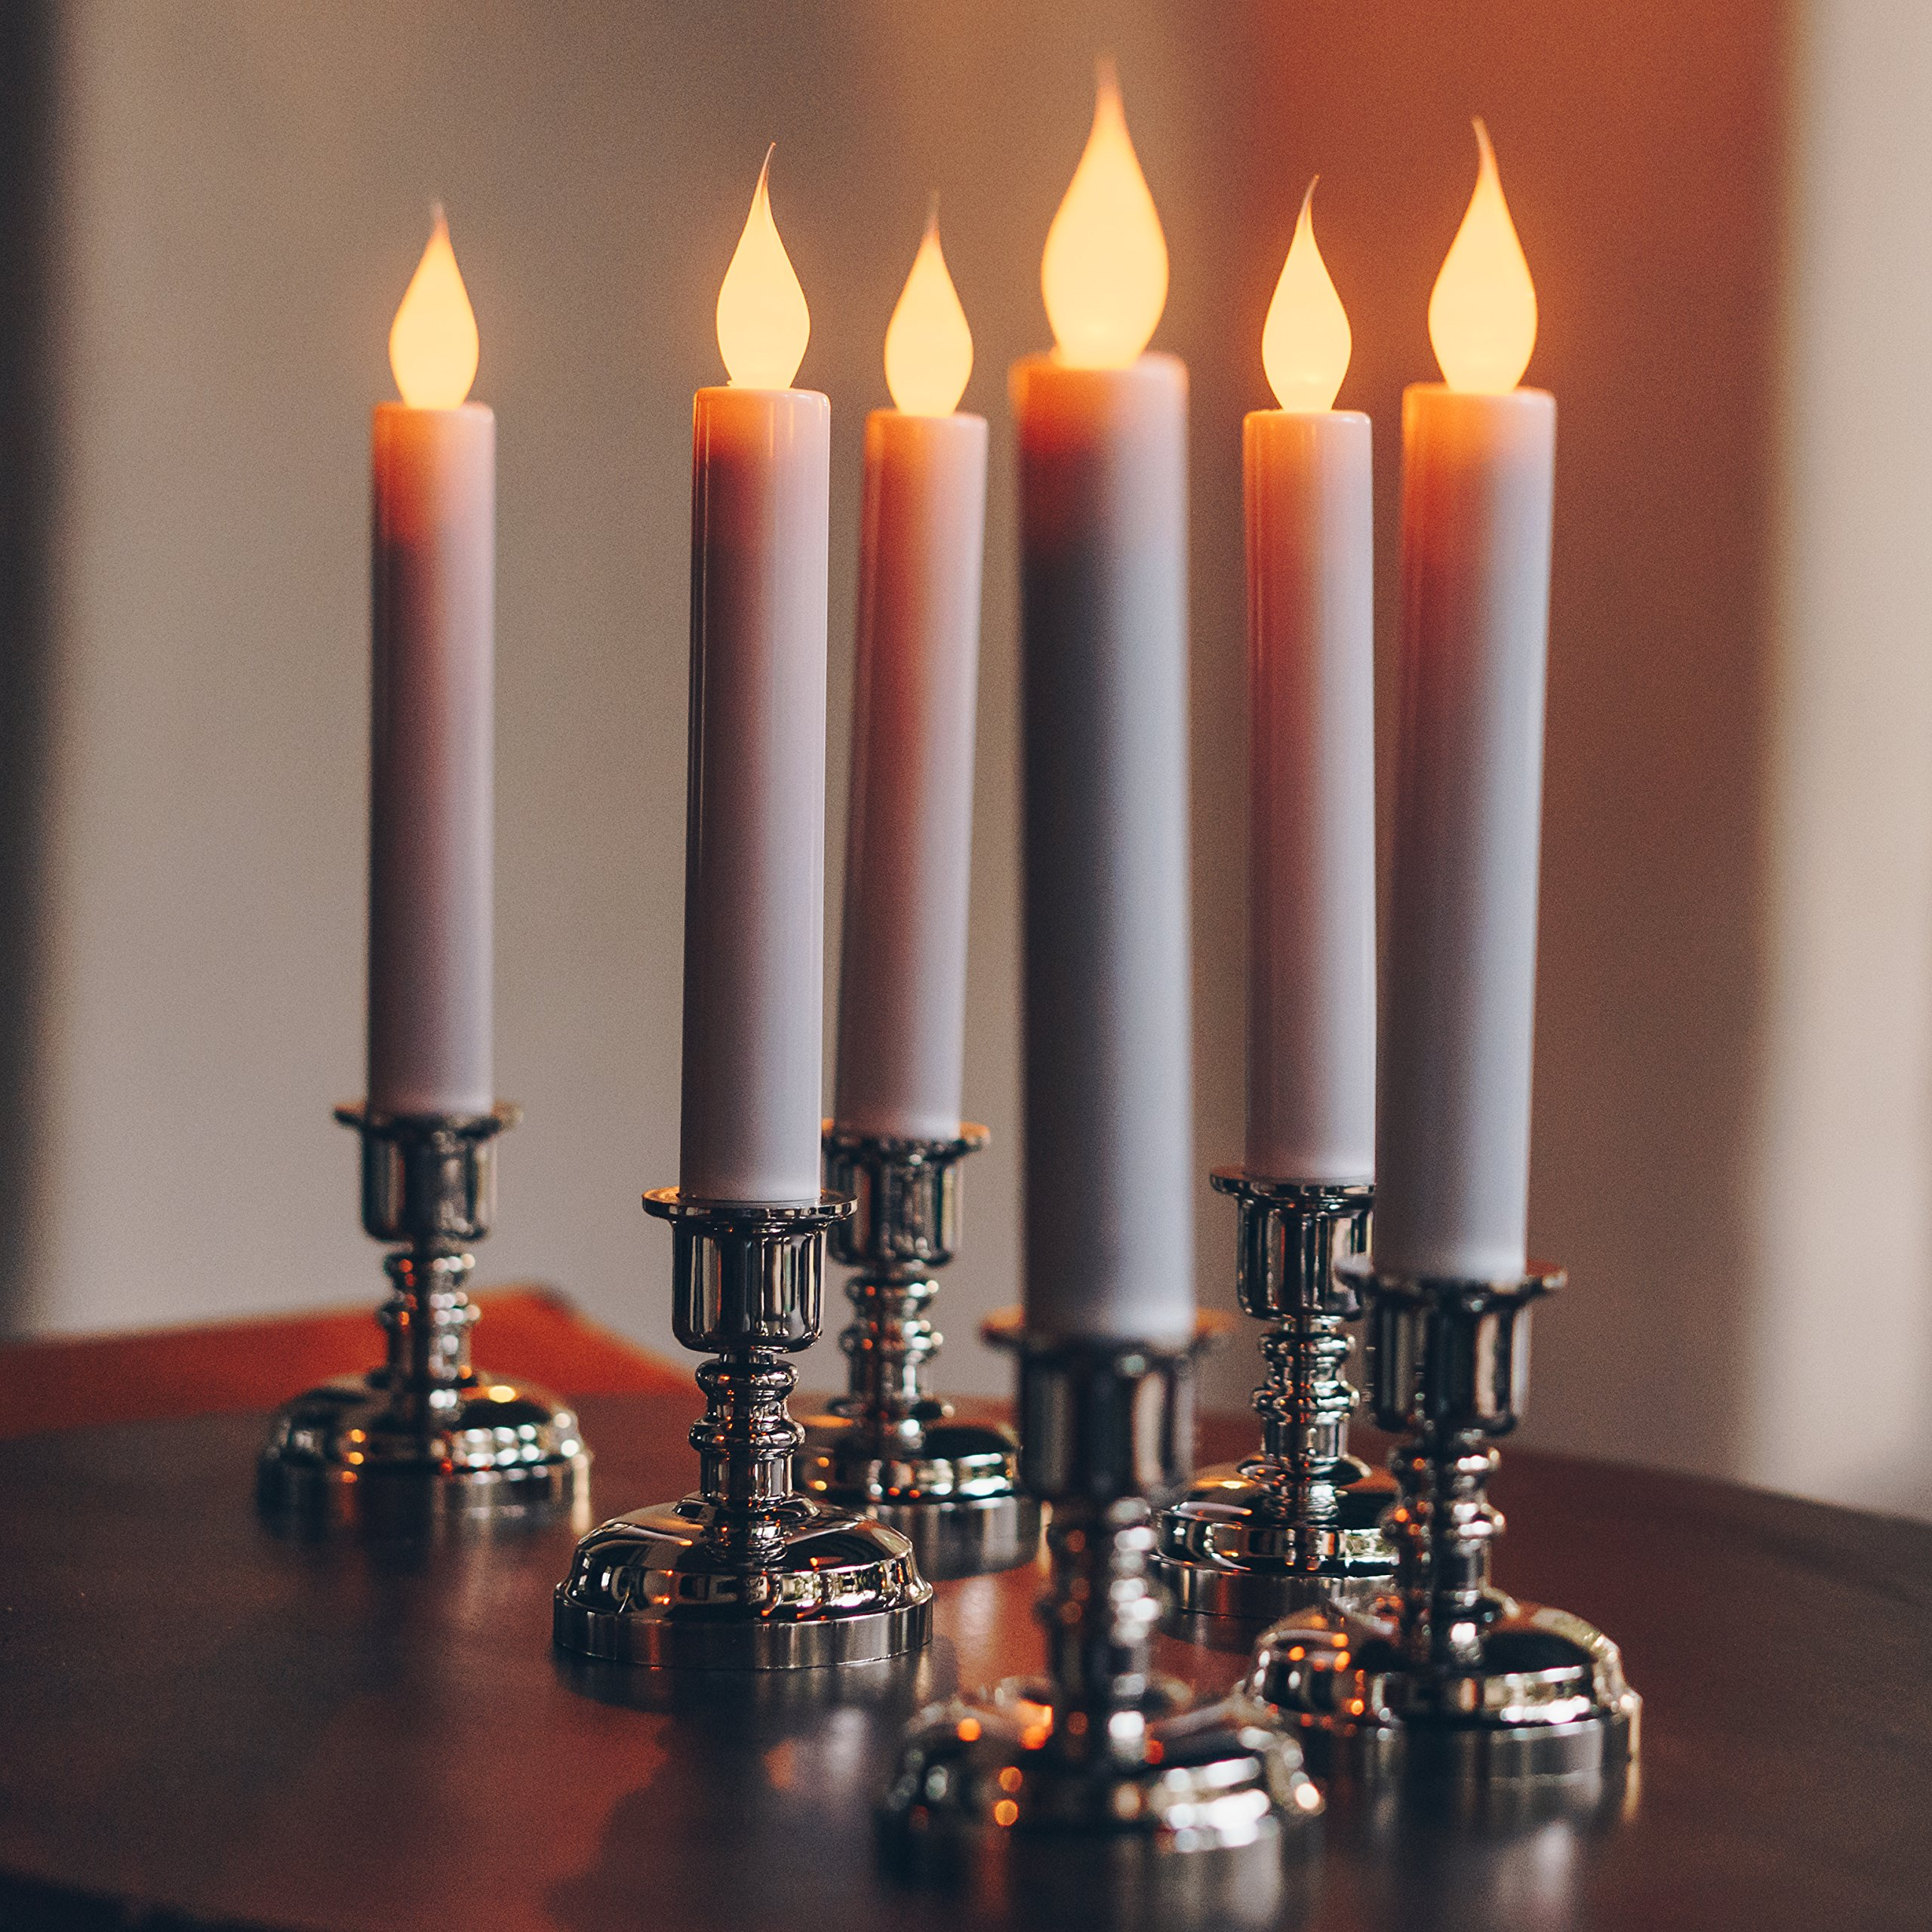 Set of 10 Flameless White Taper Window Candles with Removable Silver Candleholders with Timer and Remote, Batteries Included by Enchanted Spaces (Image #3)